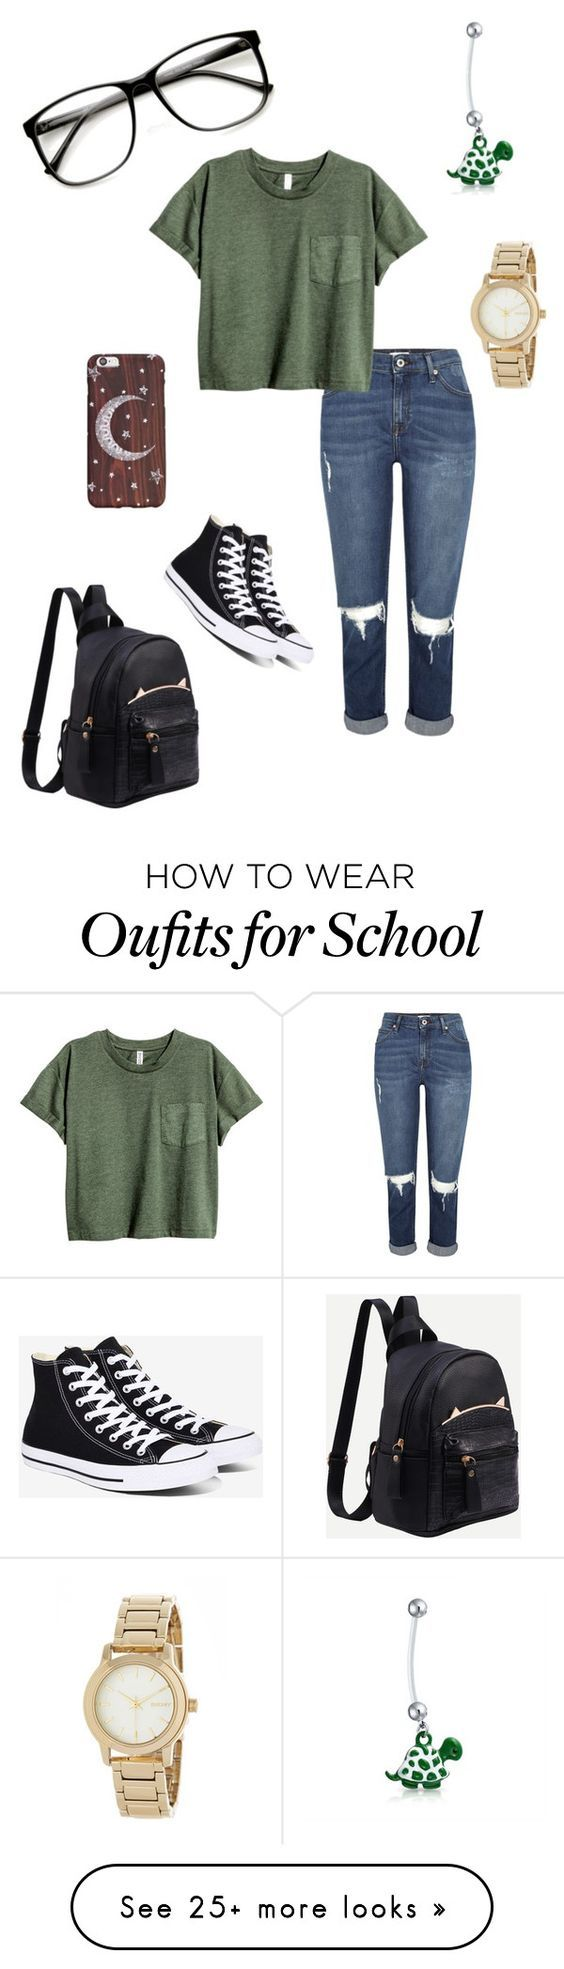 """""""Back to school"""" by jazlynvanessa on Polyvore featuring Converse, Bling Jewelry, DKNY and ZeroUV"""